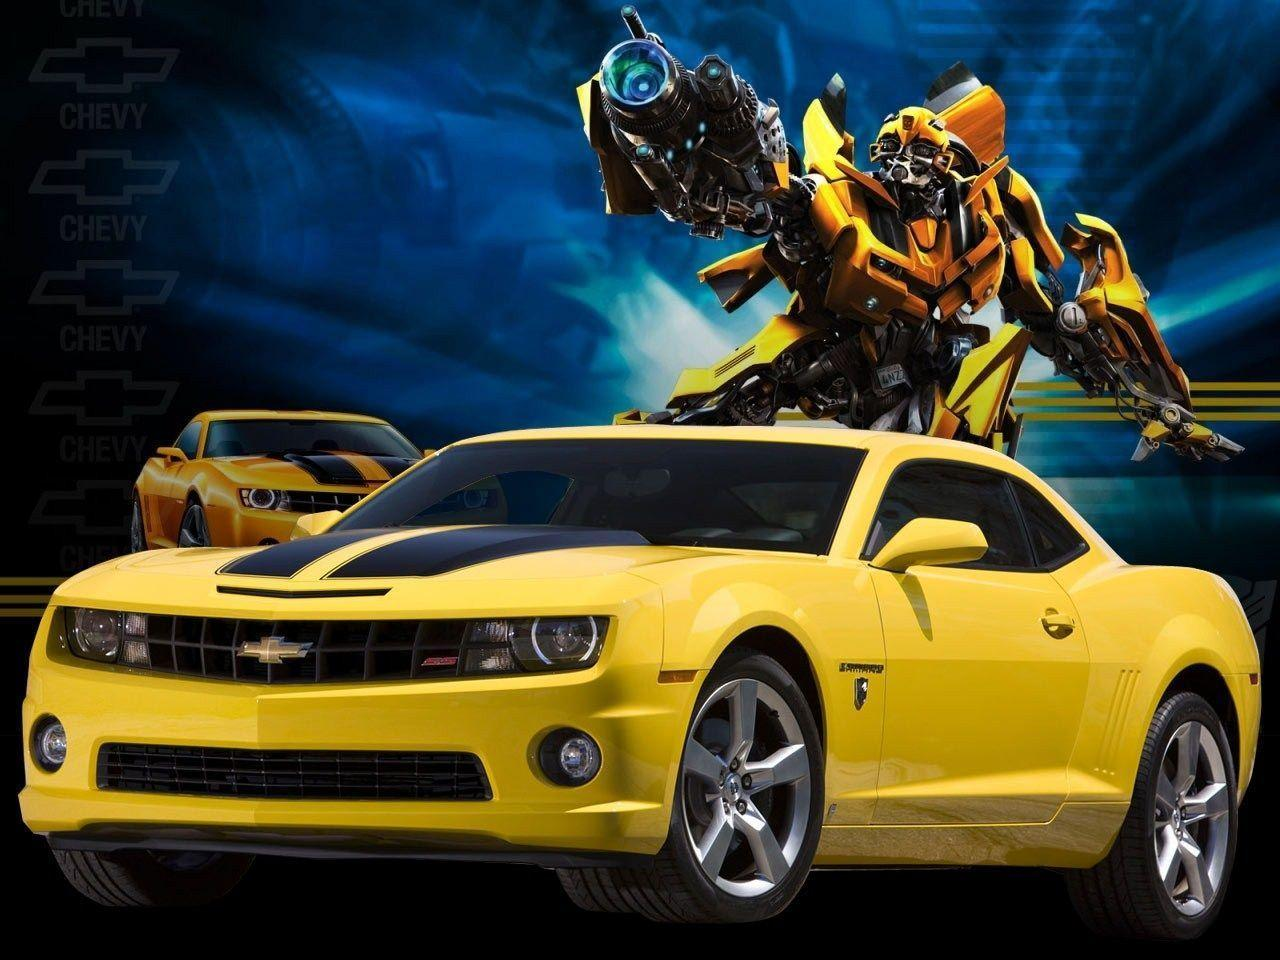 Bumblebee 2015 Wallpapers Hd Wallpaper Cave HD Wallpapers Download Free Images Wallpaper [1000image.com]